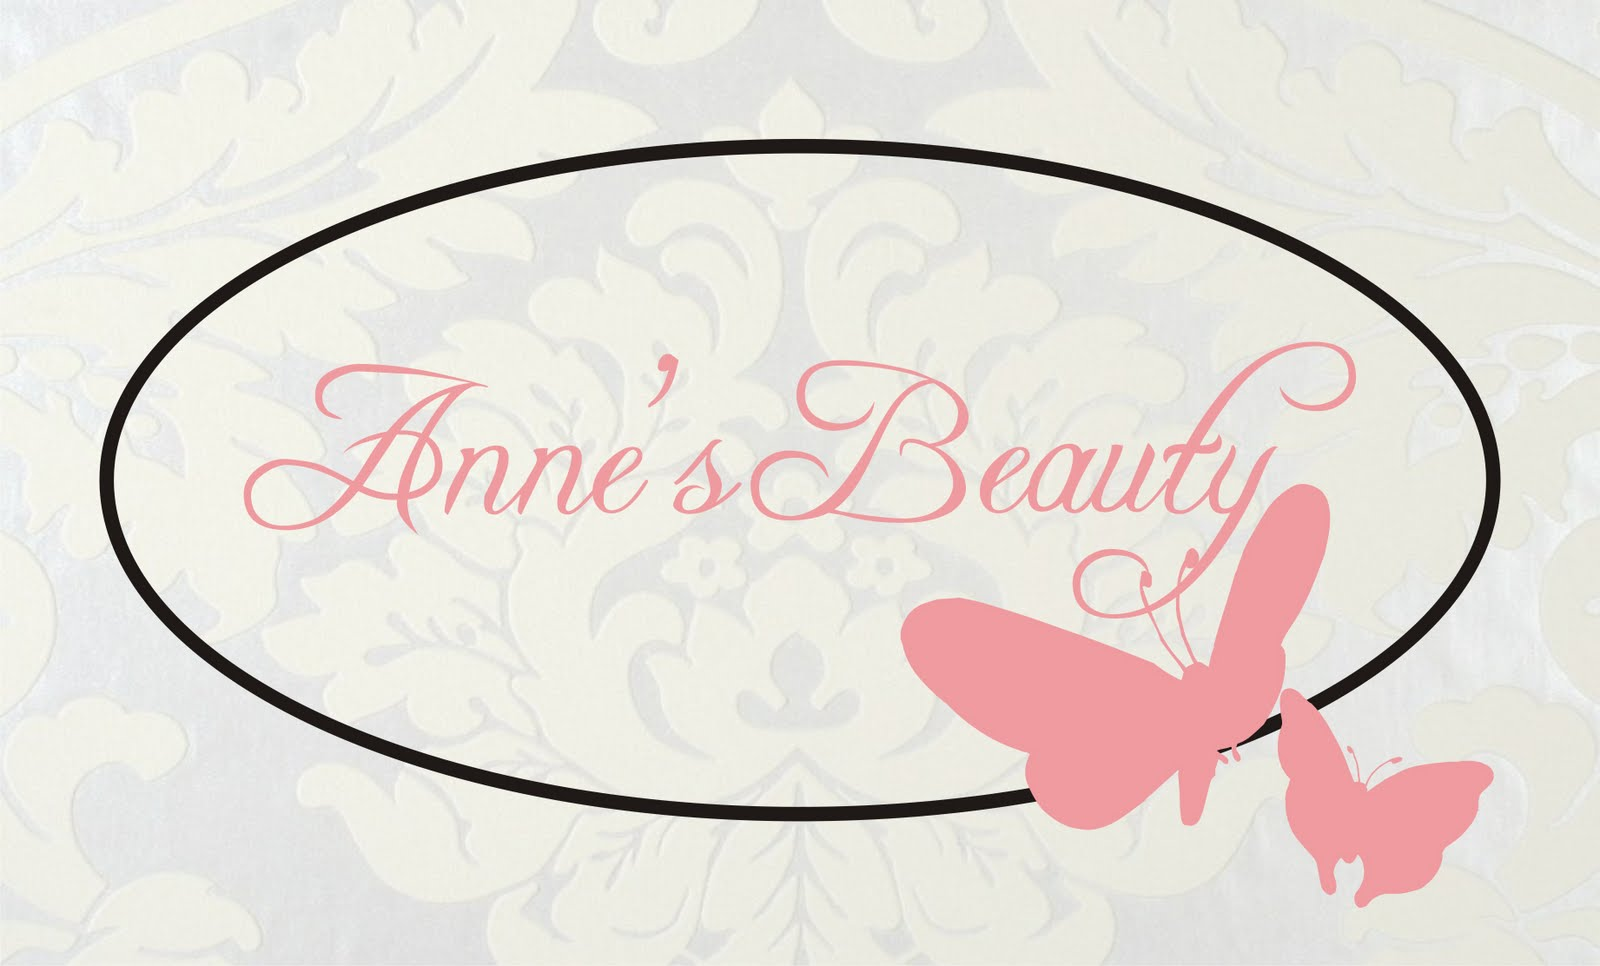 Anne's Beauty